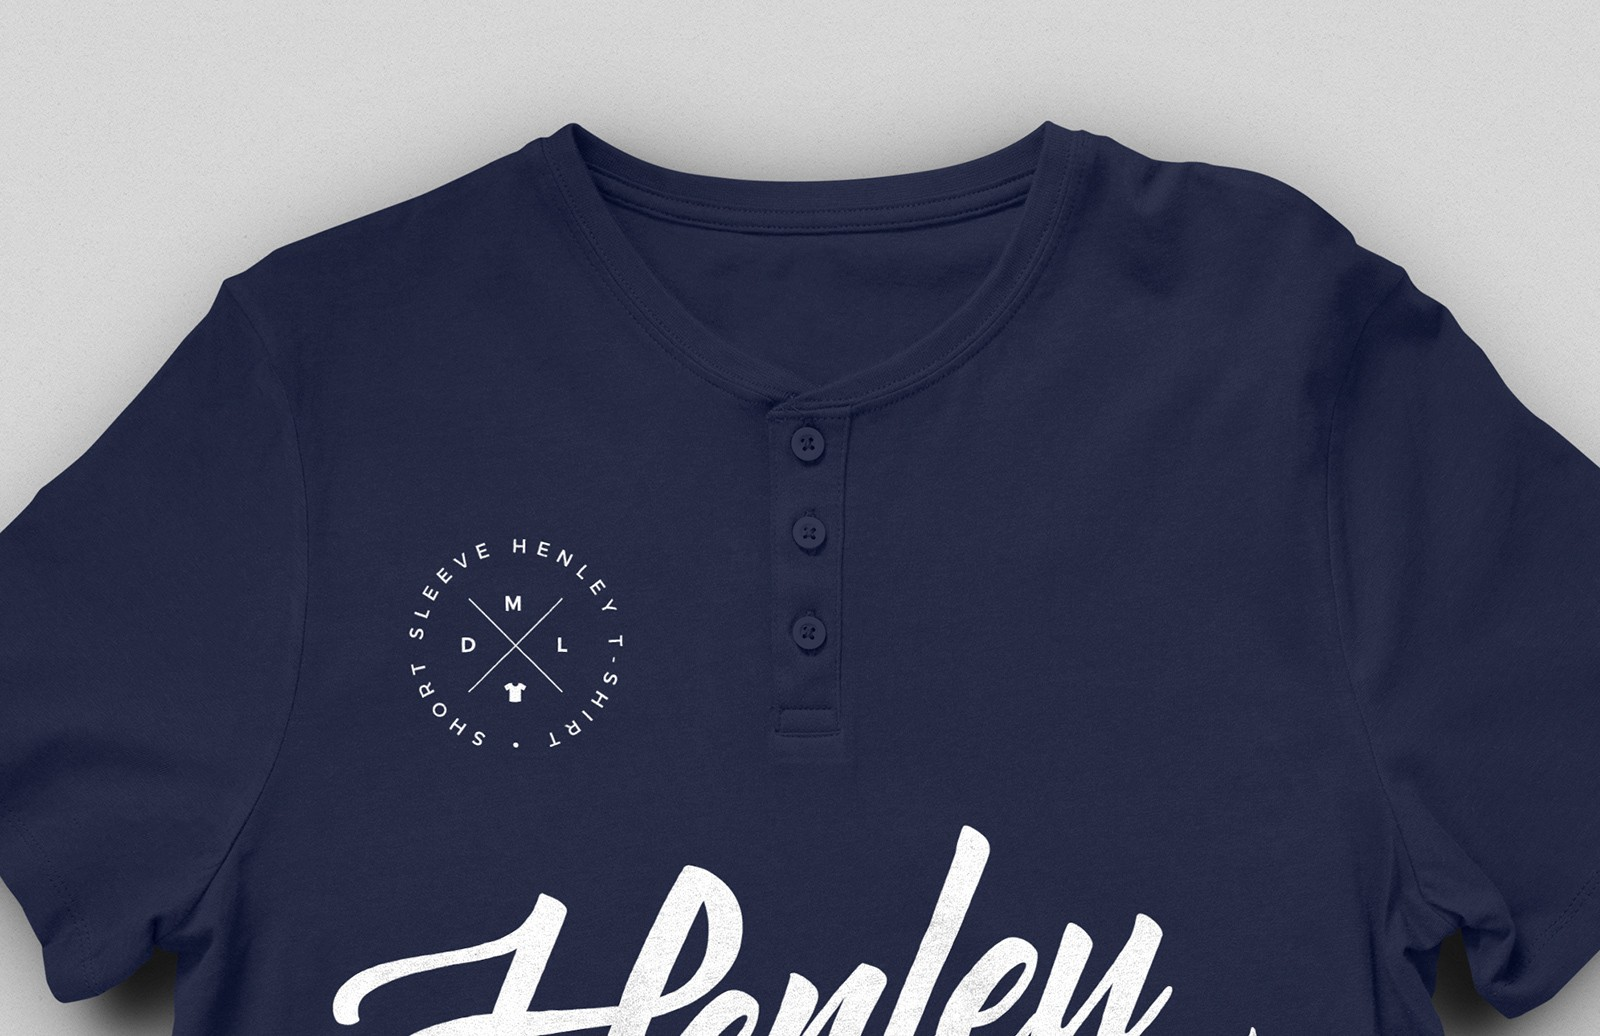 Short Sleeve Henley T-Shirt Mockup 2